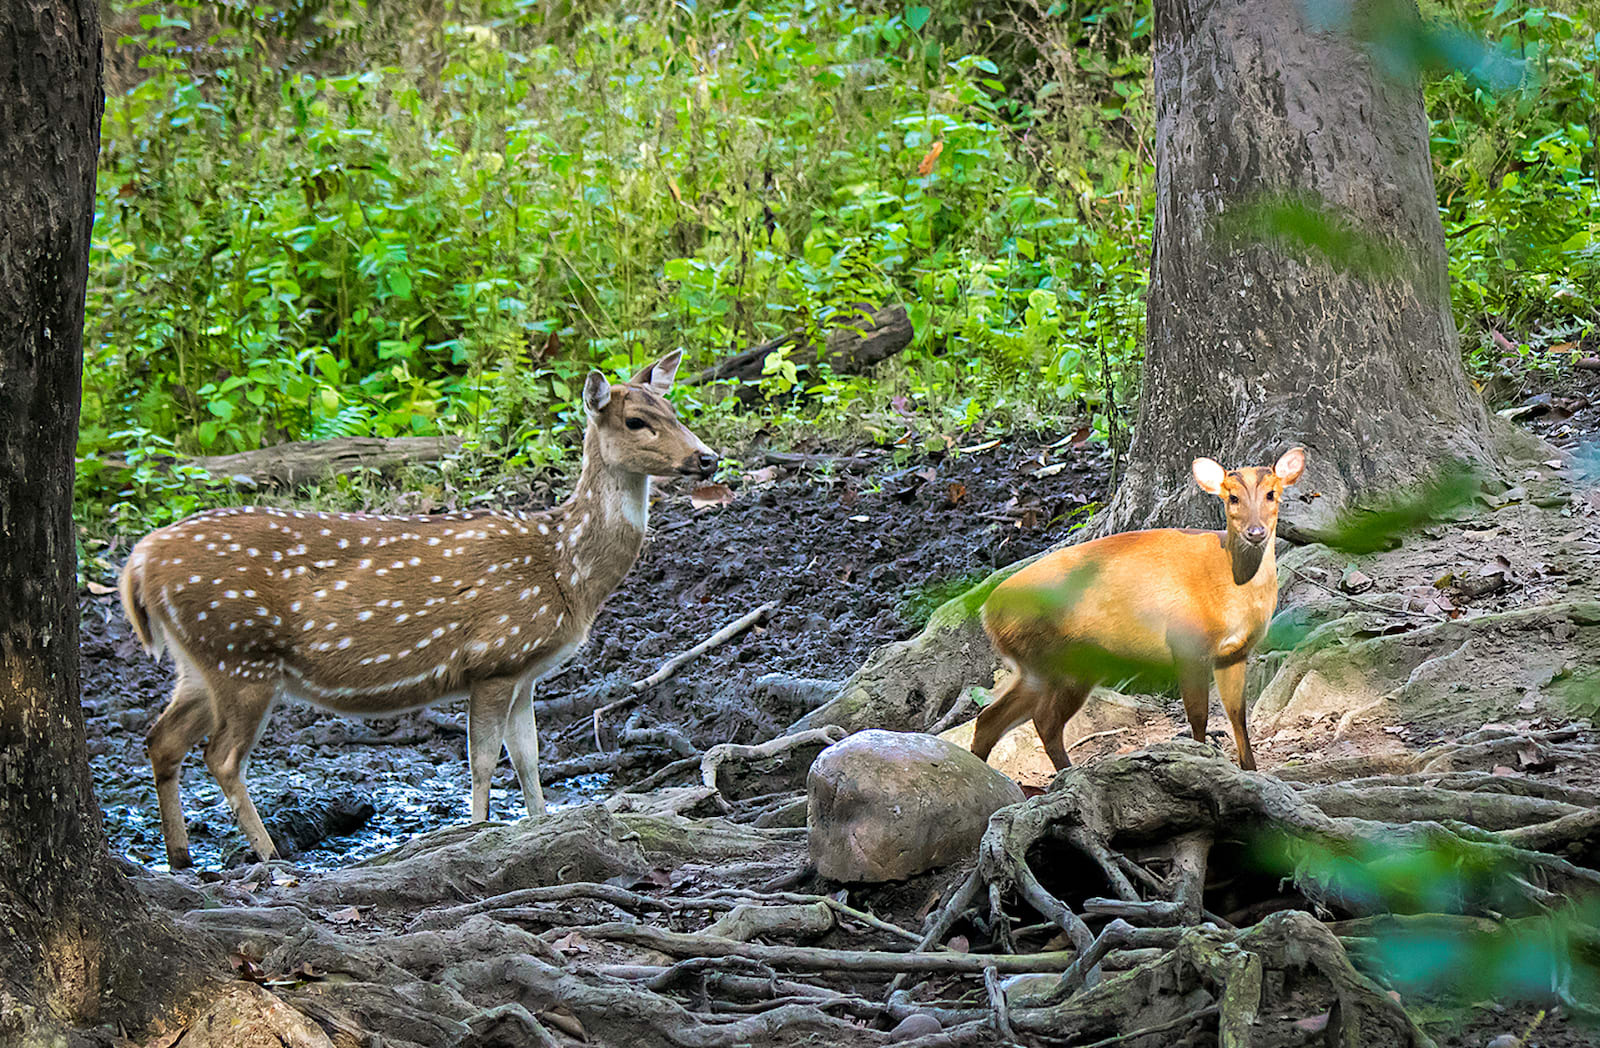 Barking deer are smaller than their more gregarious cousins, the sambar and spotted deer. Though spotted and barking deer are usually not seen in each other's company, but a visitor may sometimes have encounters like this one near a waterhole in Corbett National Park. Photo: Shashank Birla